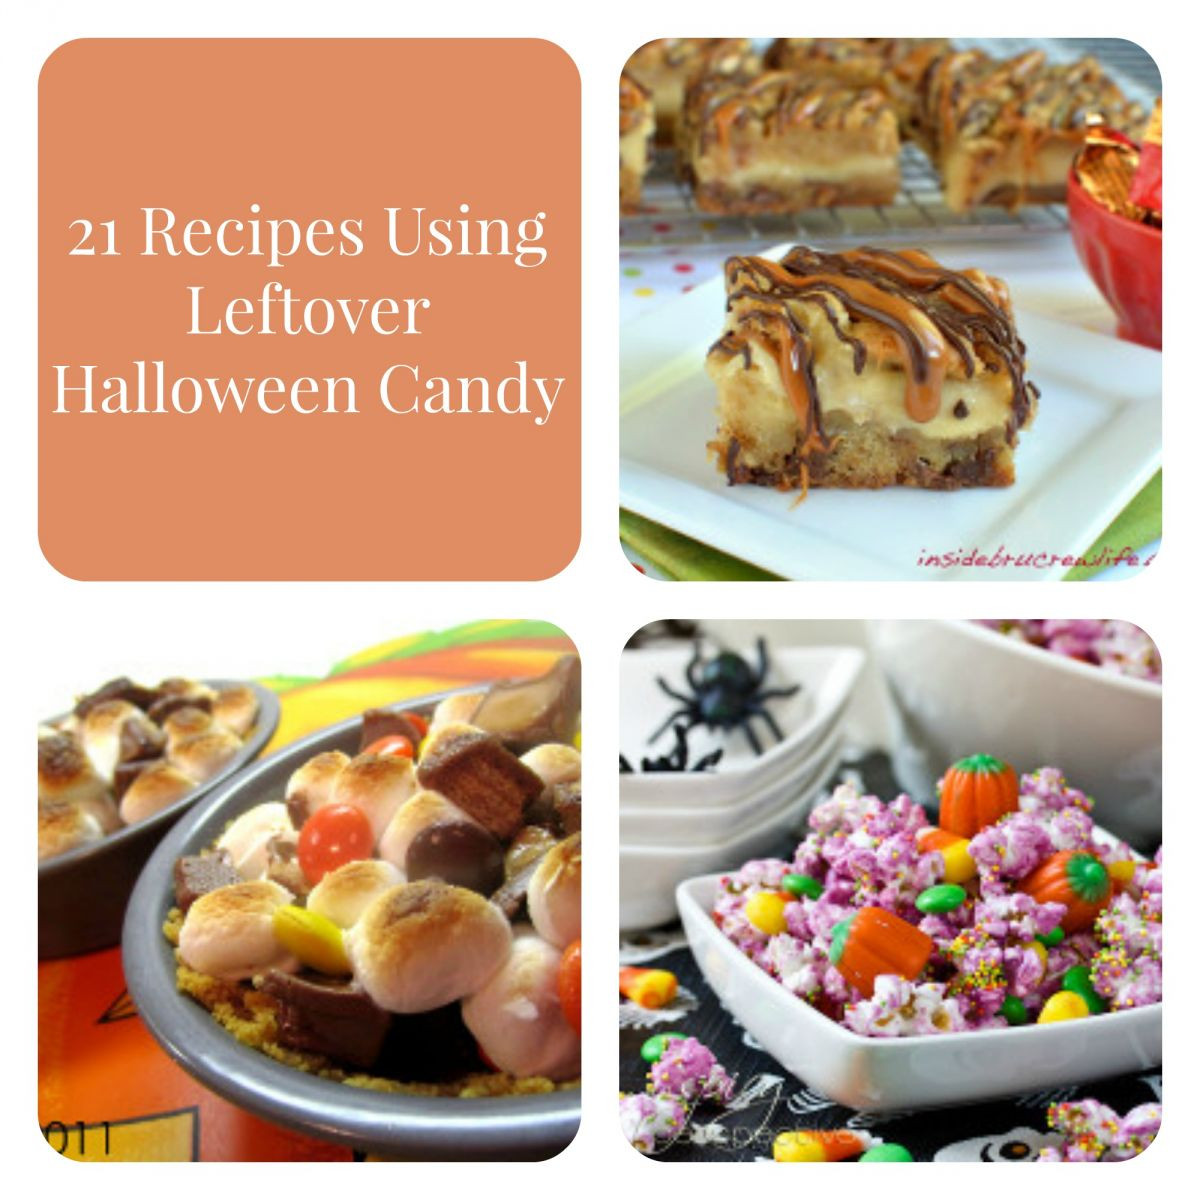 Recipes For Leftover Halloween Candy  21 Recipes Using Leftover Halloween Candy